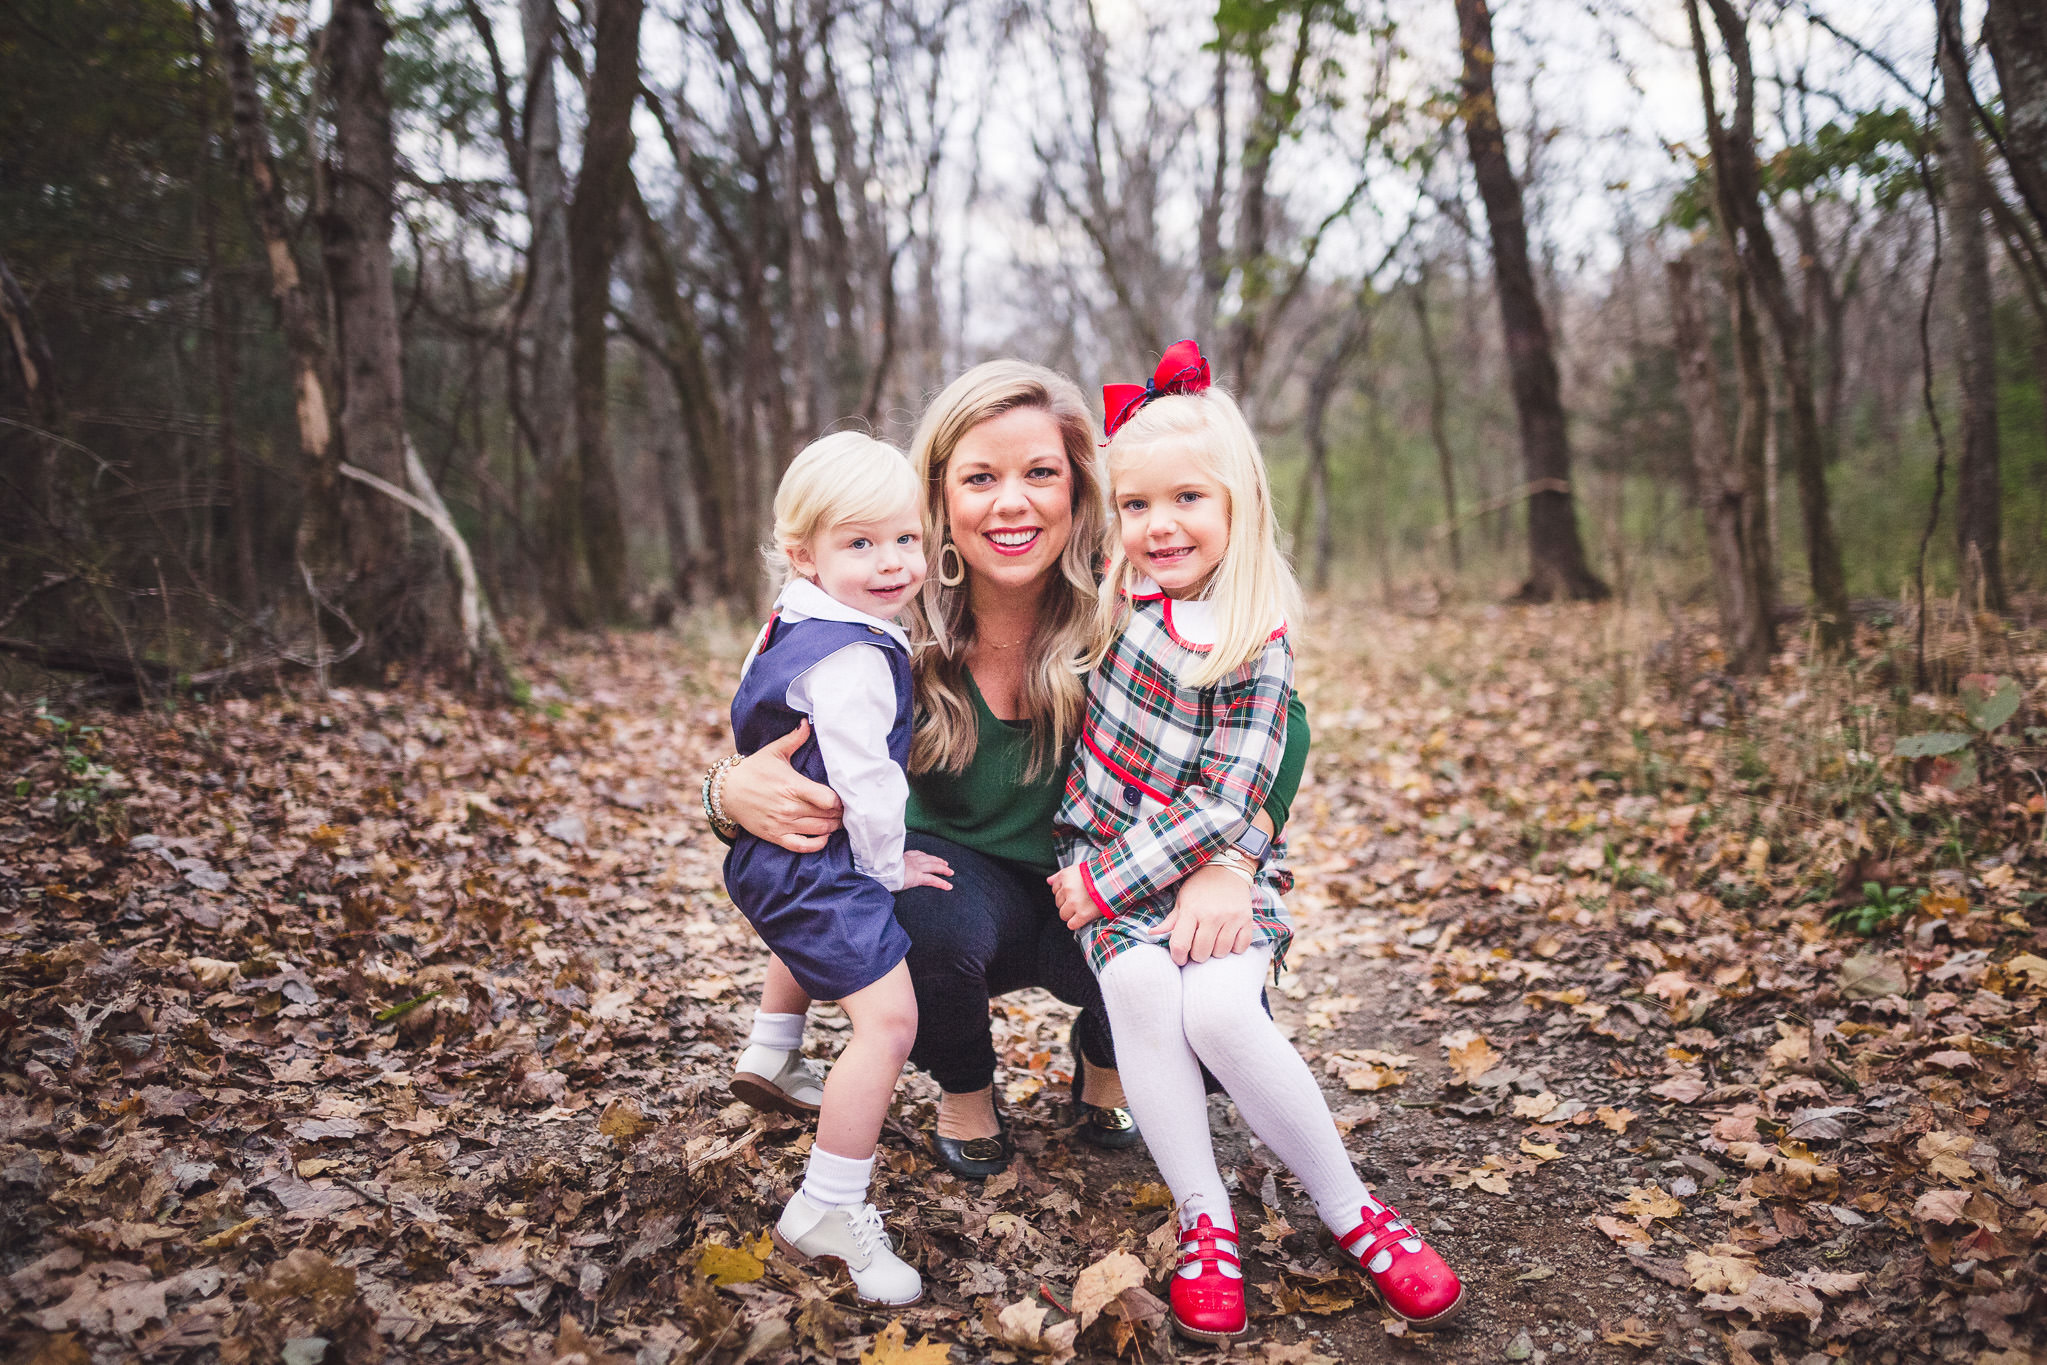 fall family photo outdoors with fallen leaves in forest thomas wywrot photography